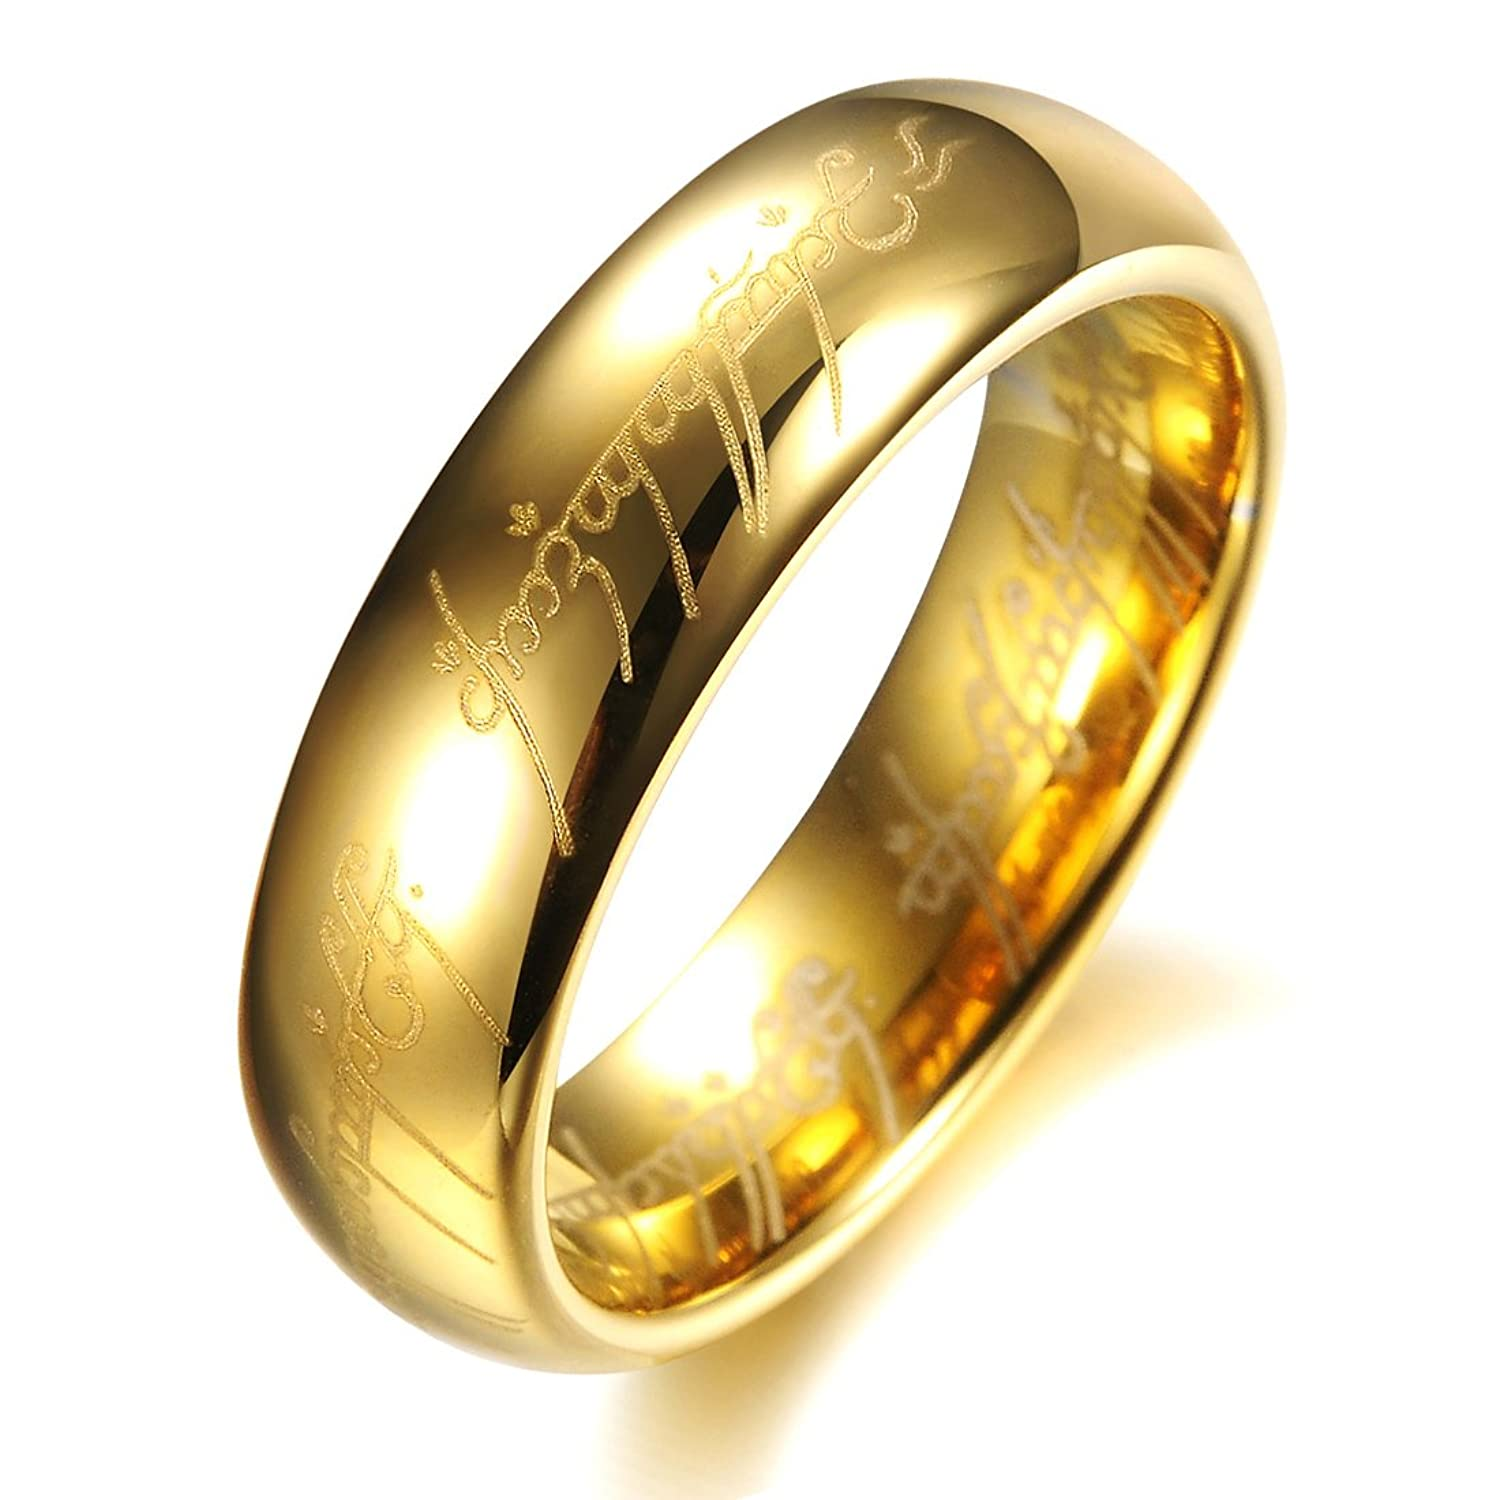 Dreamslink 18K Gold Plated Lord The Rings Pure Tungsten carbide